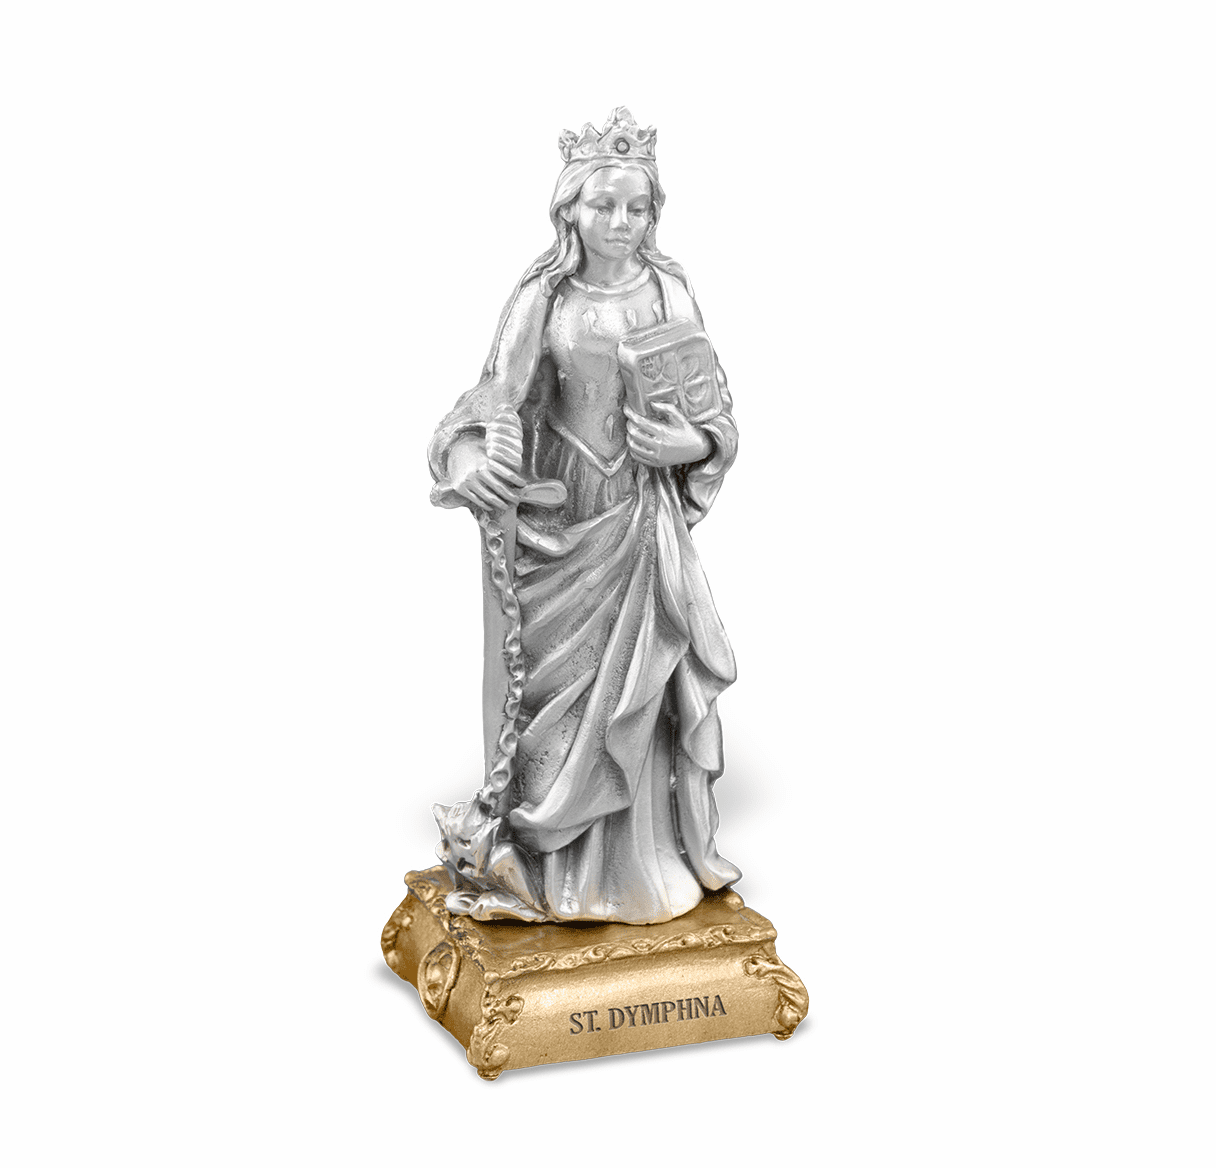 St Dymphna Patron Saint Pewter Statue on Gold Tone Base by Hirten